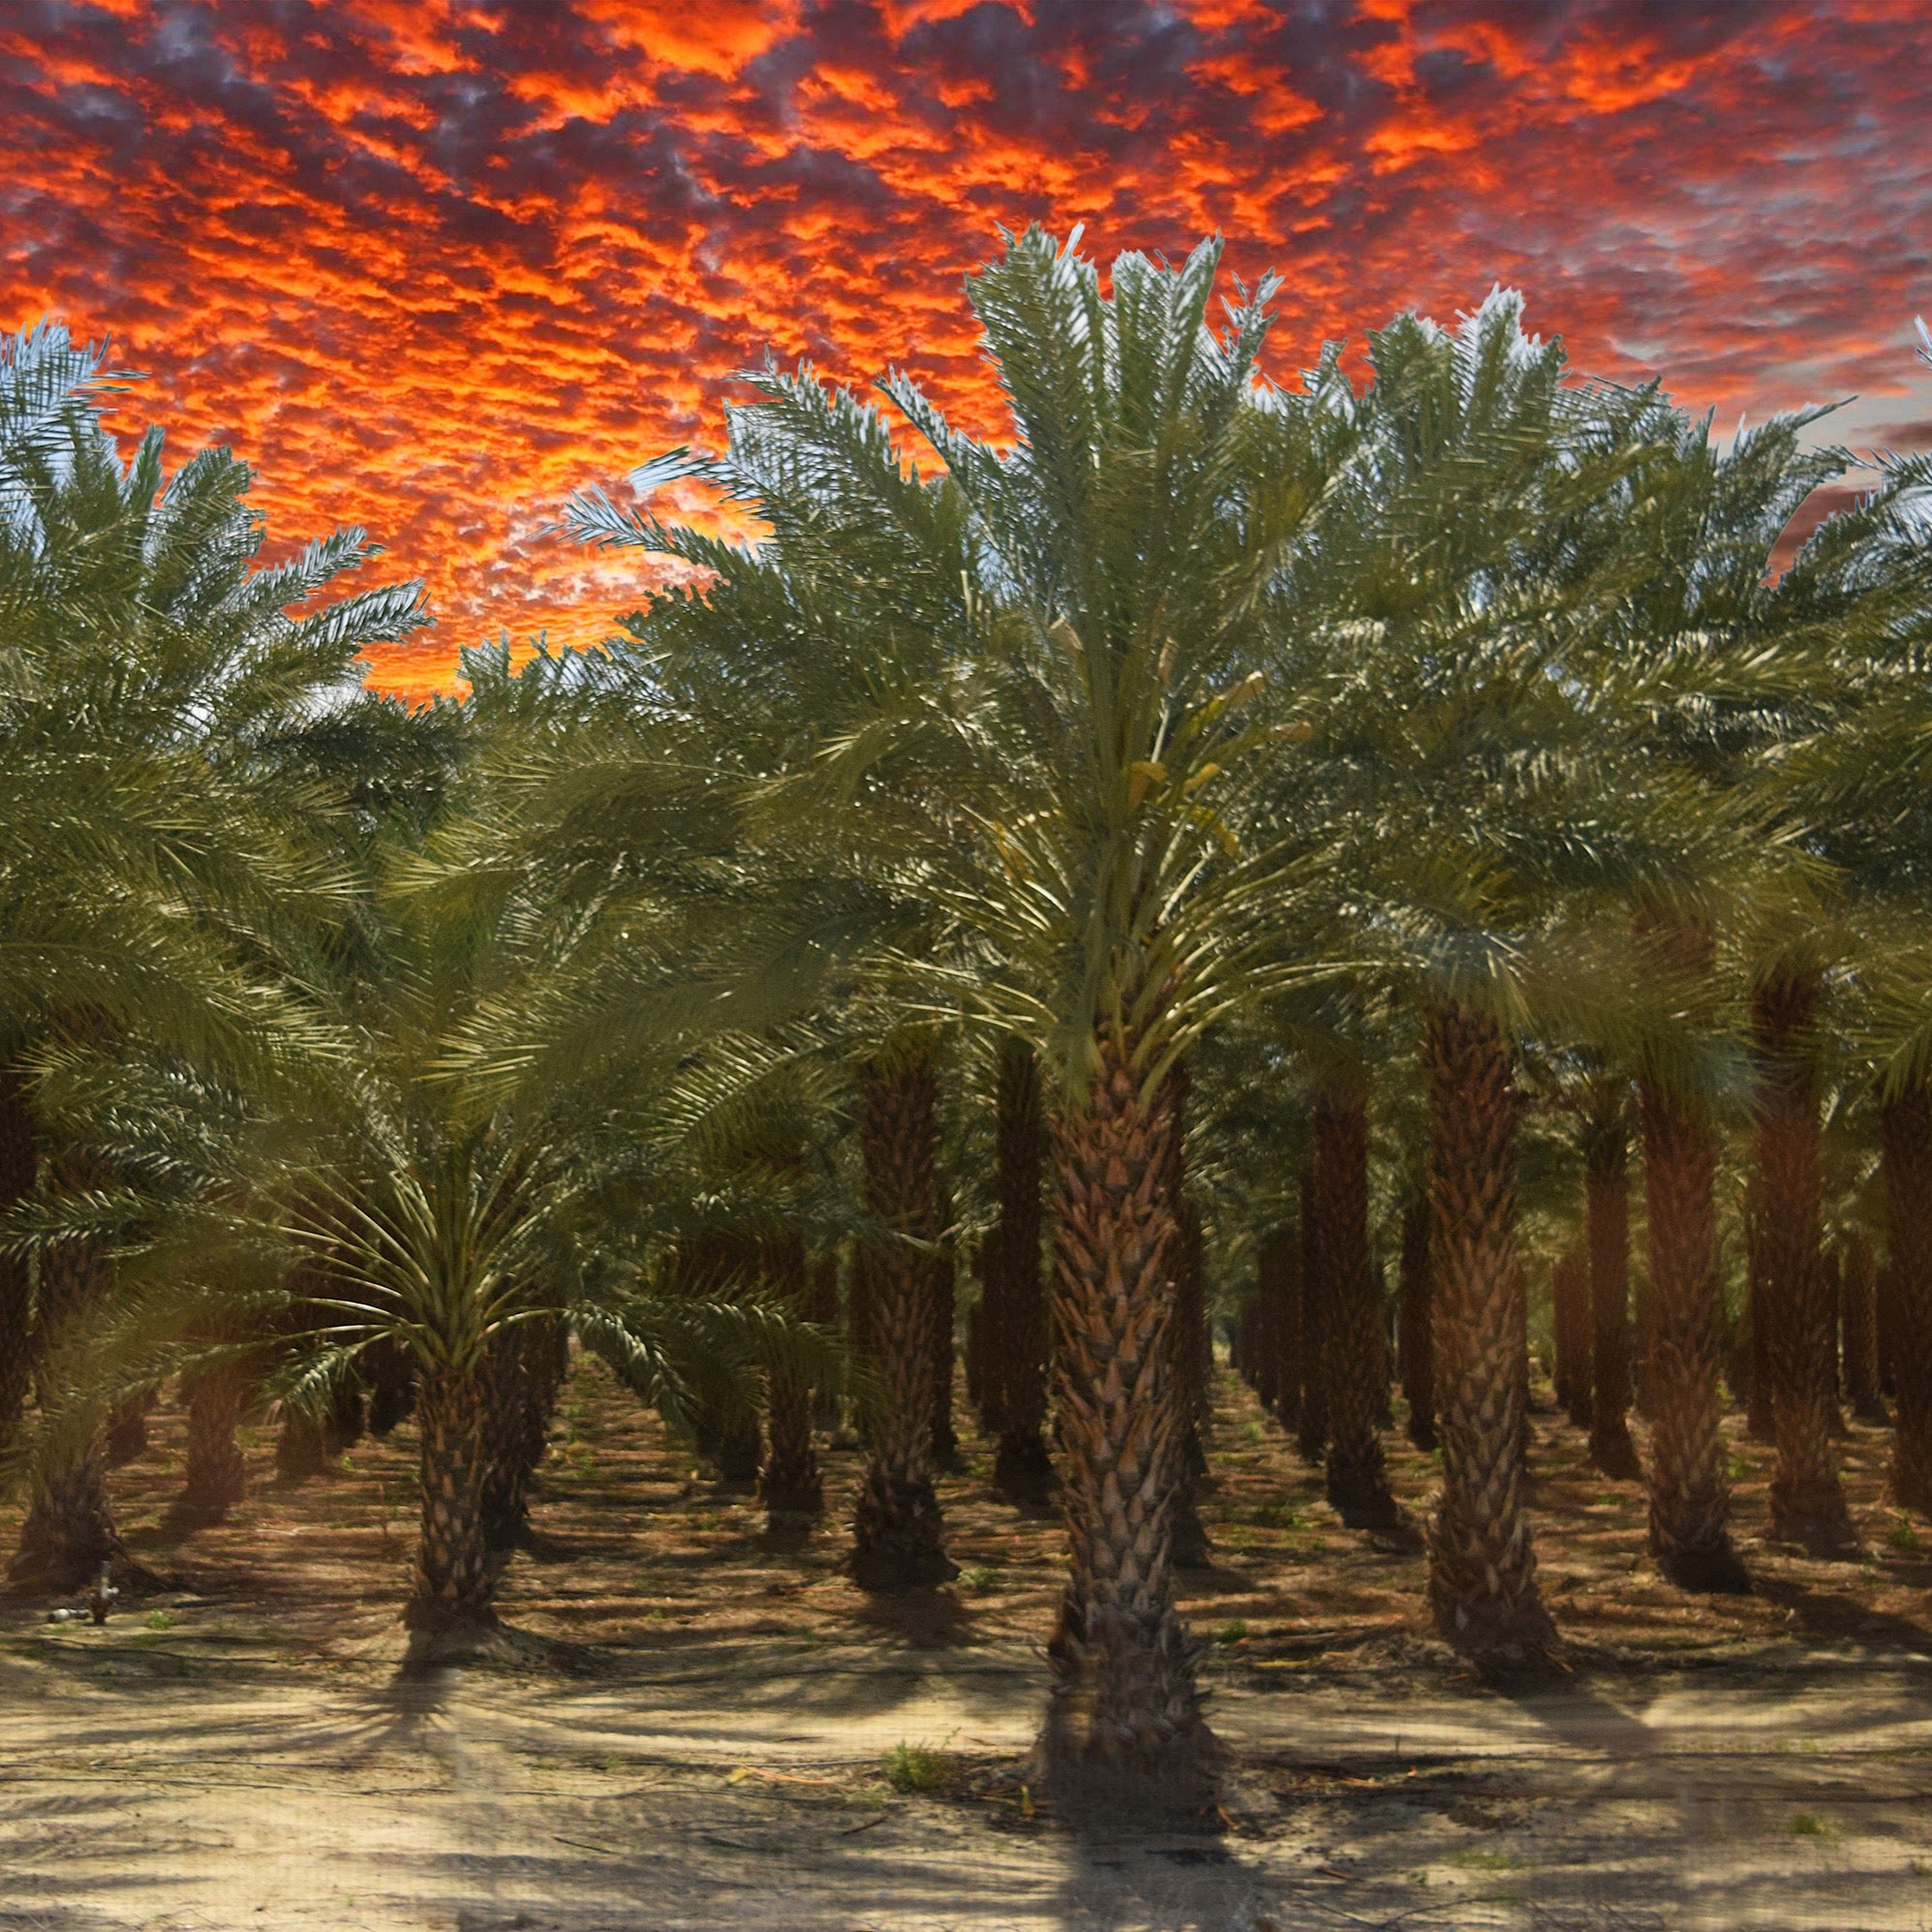 """Palm Tree Garden-Salton Sea"" by Sherry Little Fawn Schuessler 